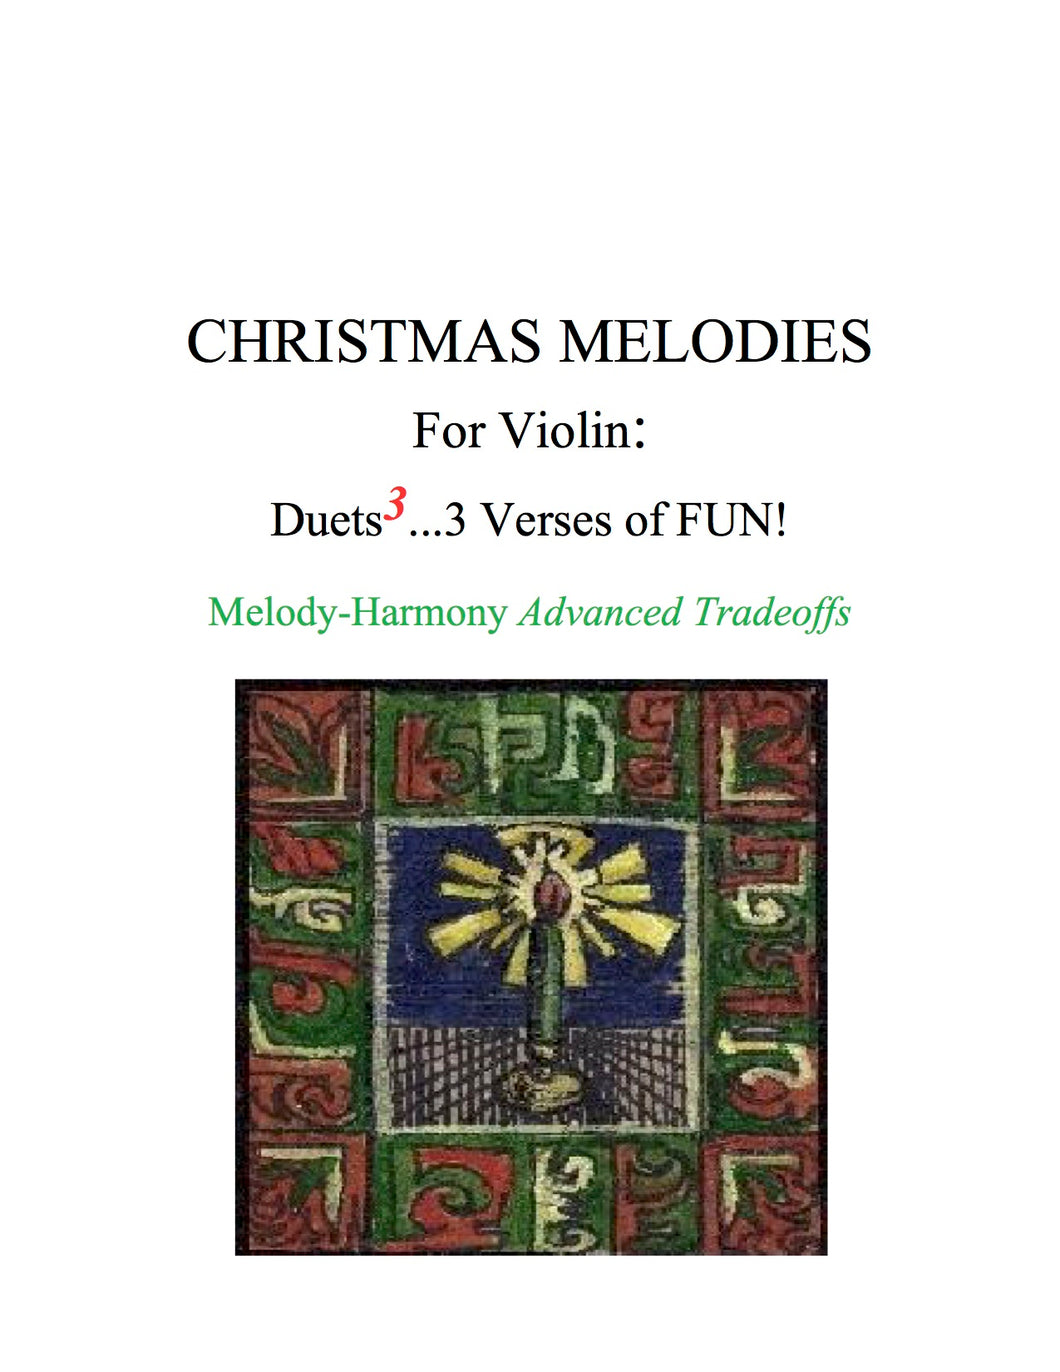 032 - Christmas Melodies For Violin: (B) Duets to the 3rd Power...3 Verses of FUN!  Melody-Harmony Tradeoff